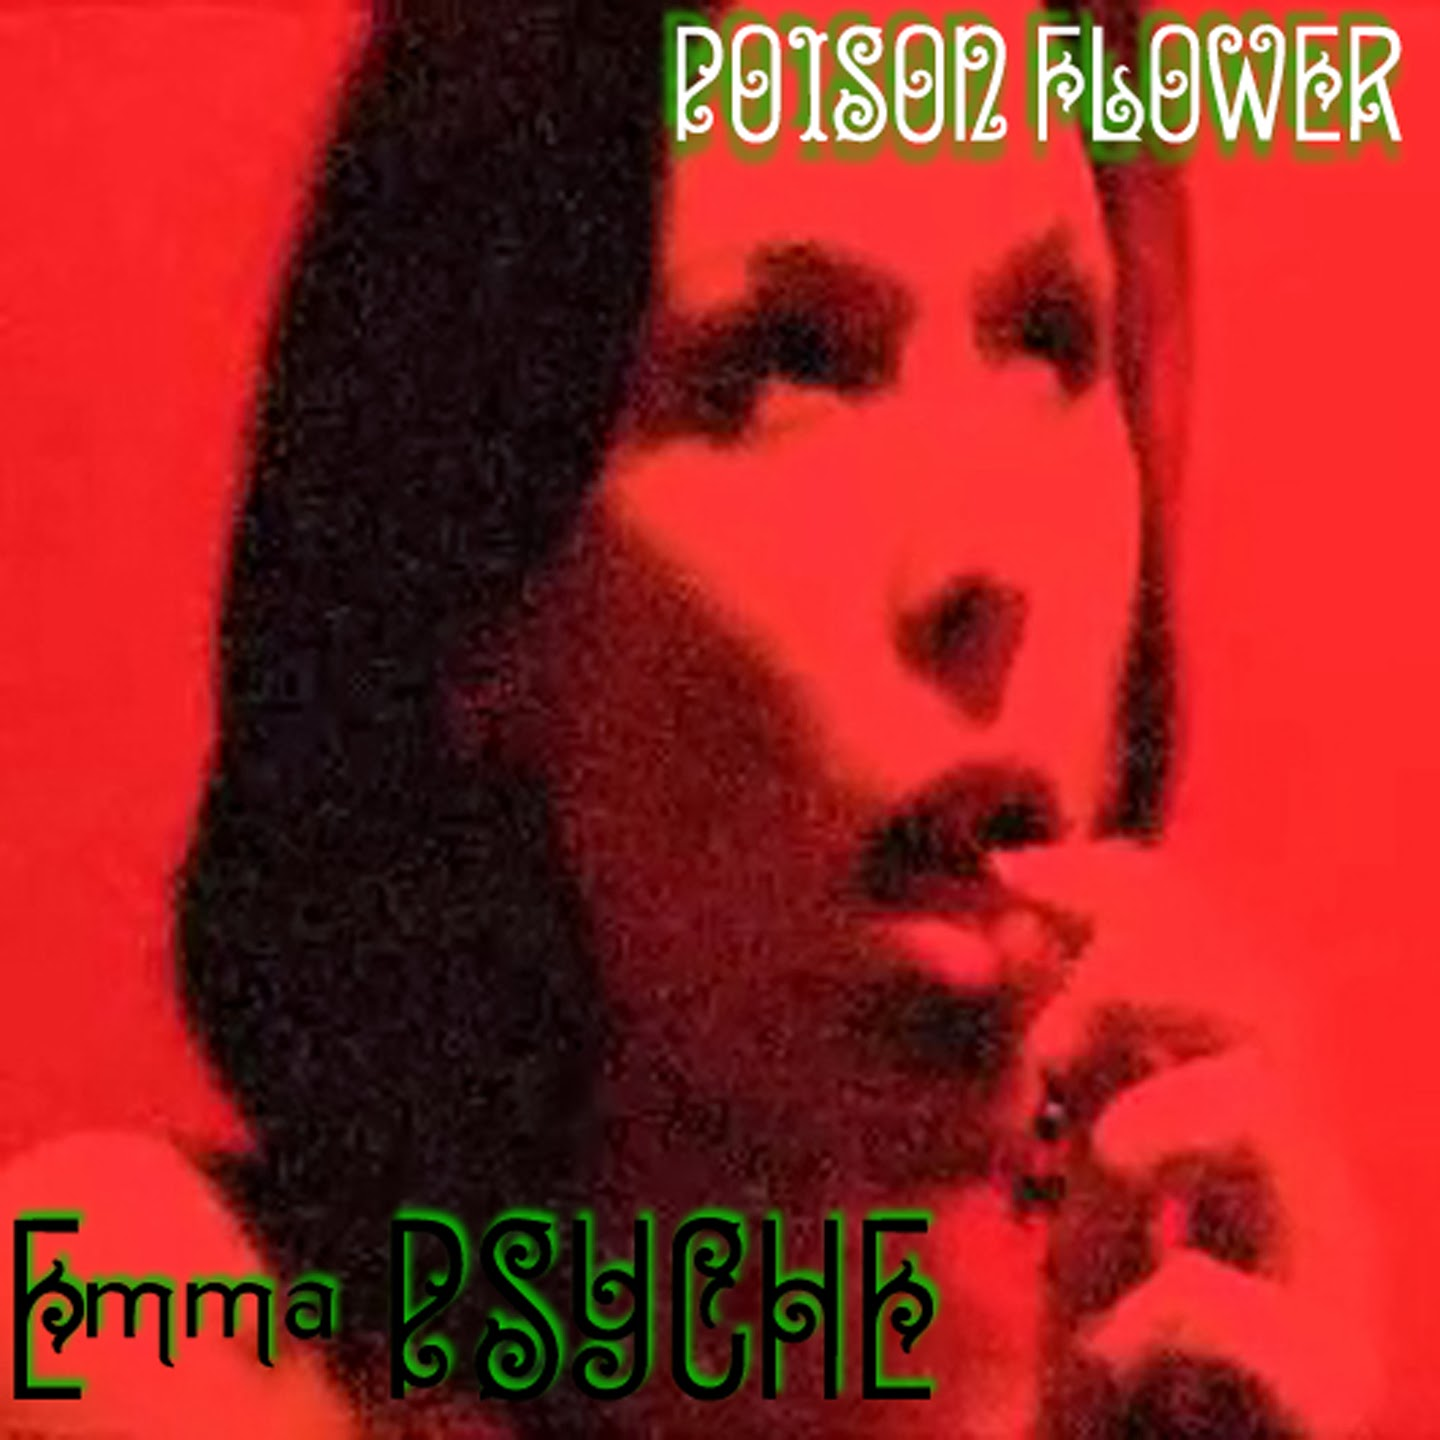 https://itunes.apple.com/fr/album/poison-flower-ep/id822227054